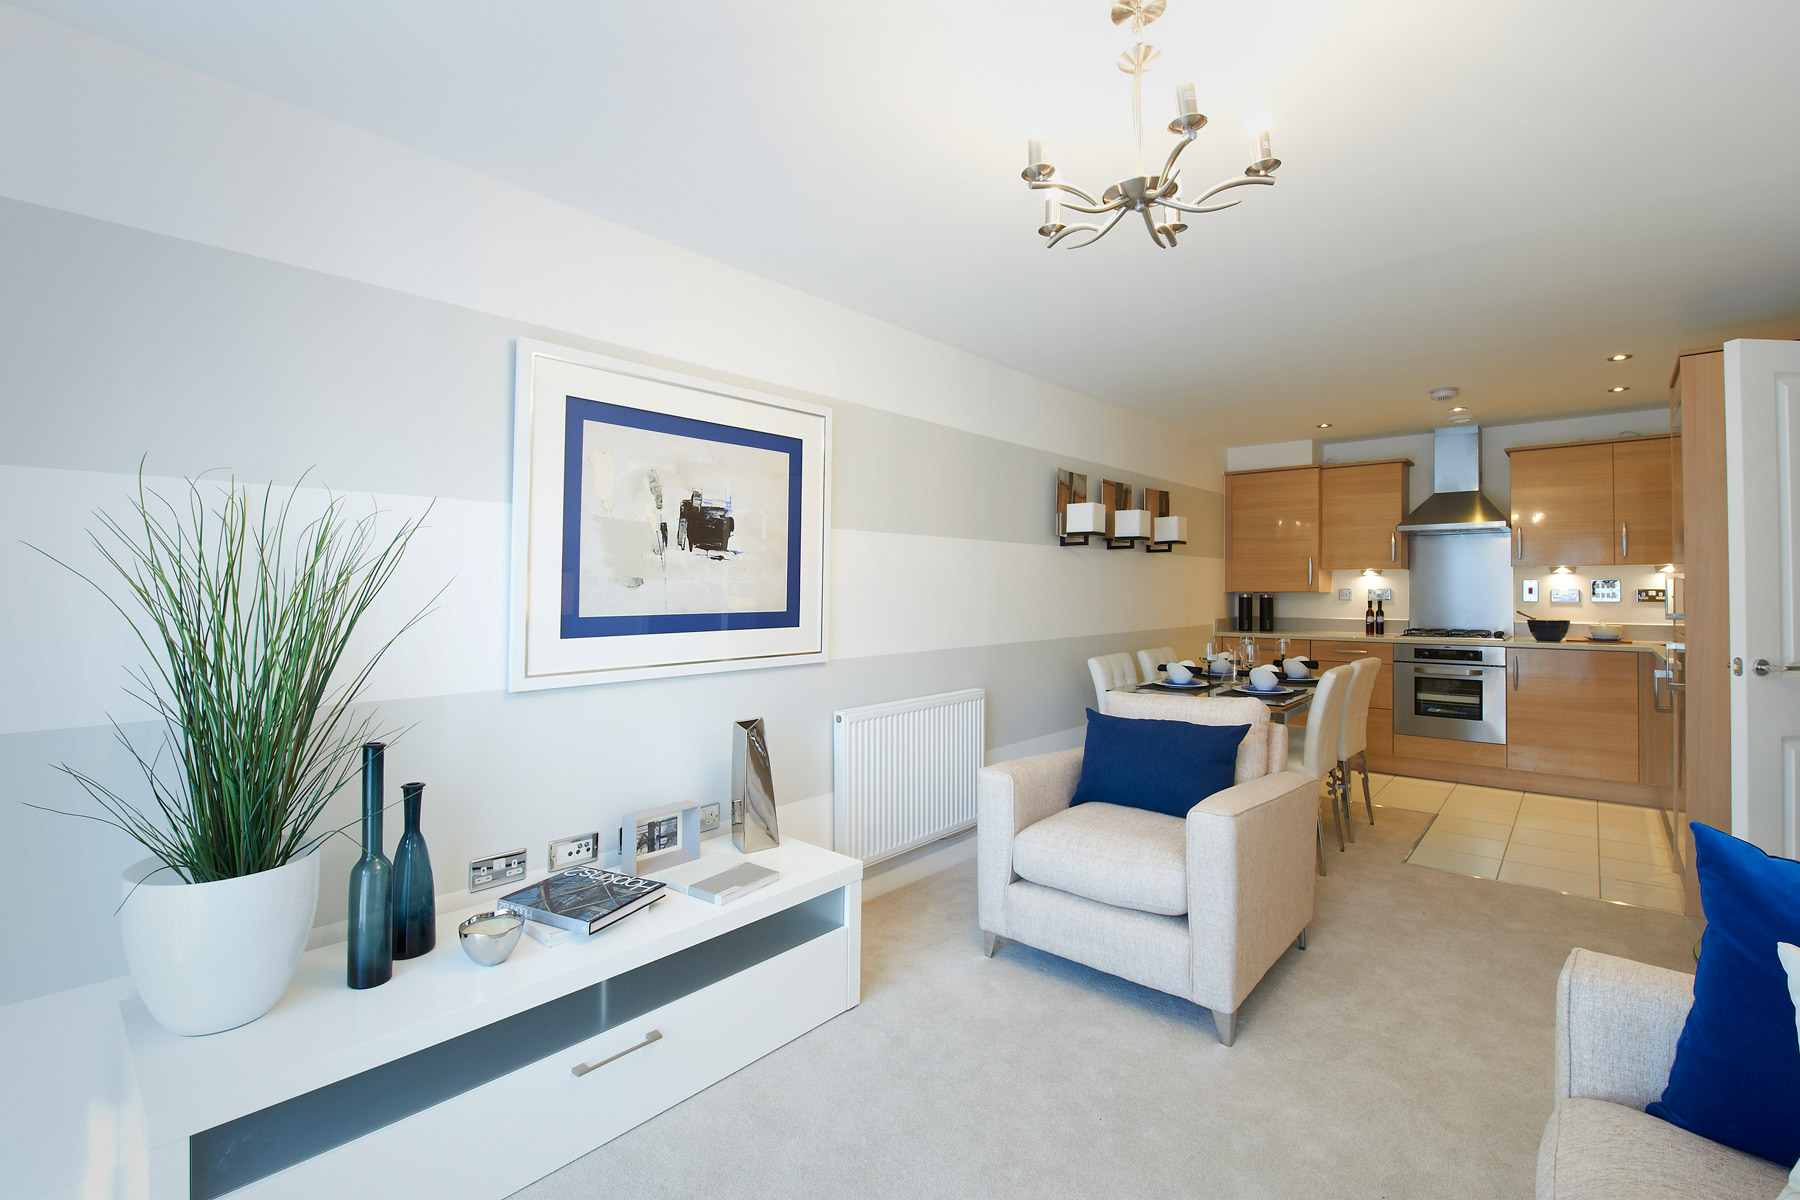 A typical Taylor Wimpey apartment kitchen/living area.